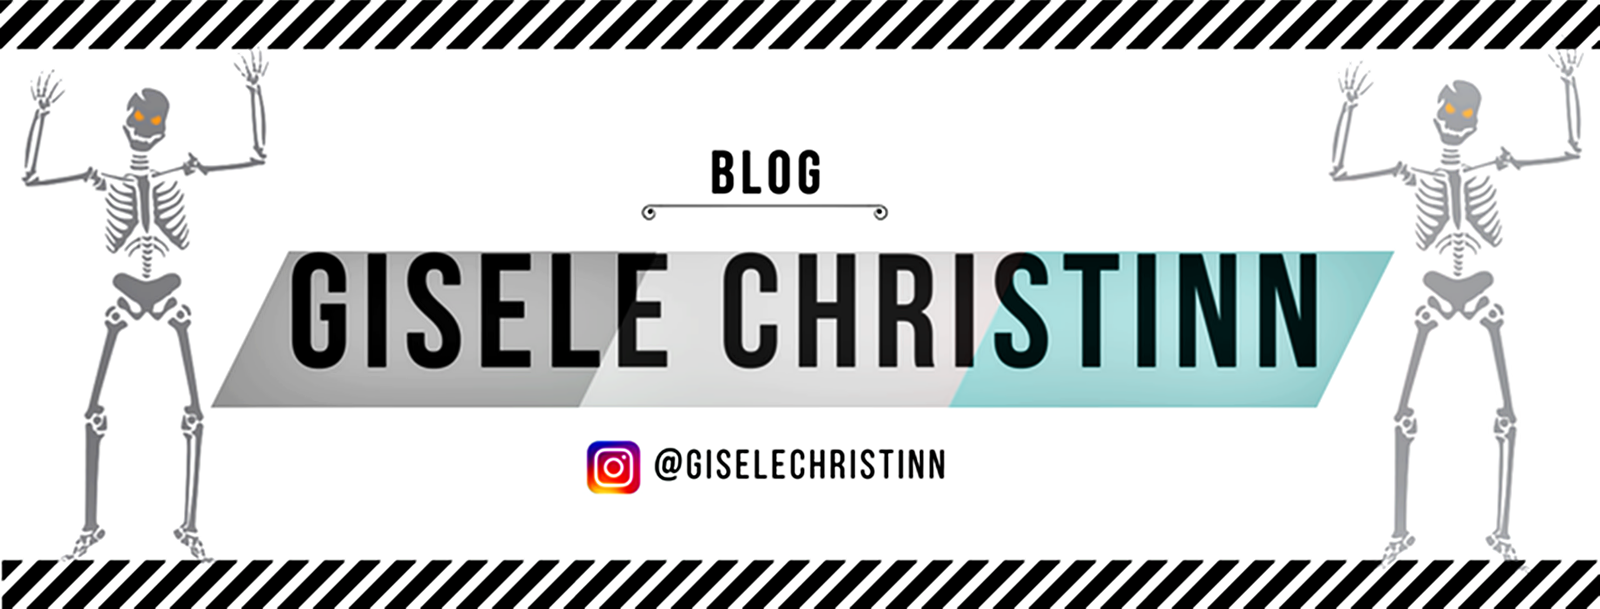 GISELE CHRISTINN - BLOG